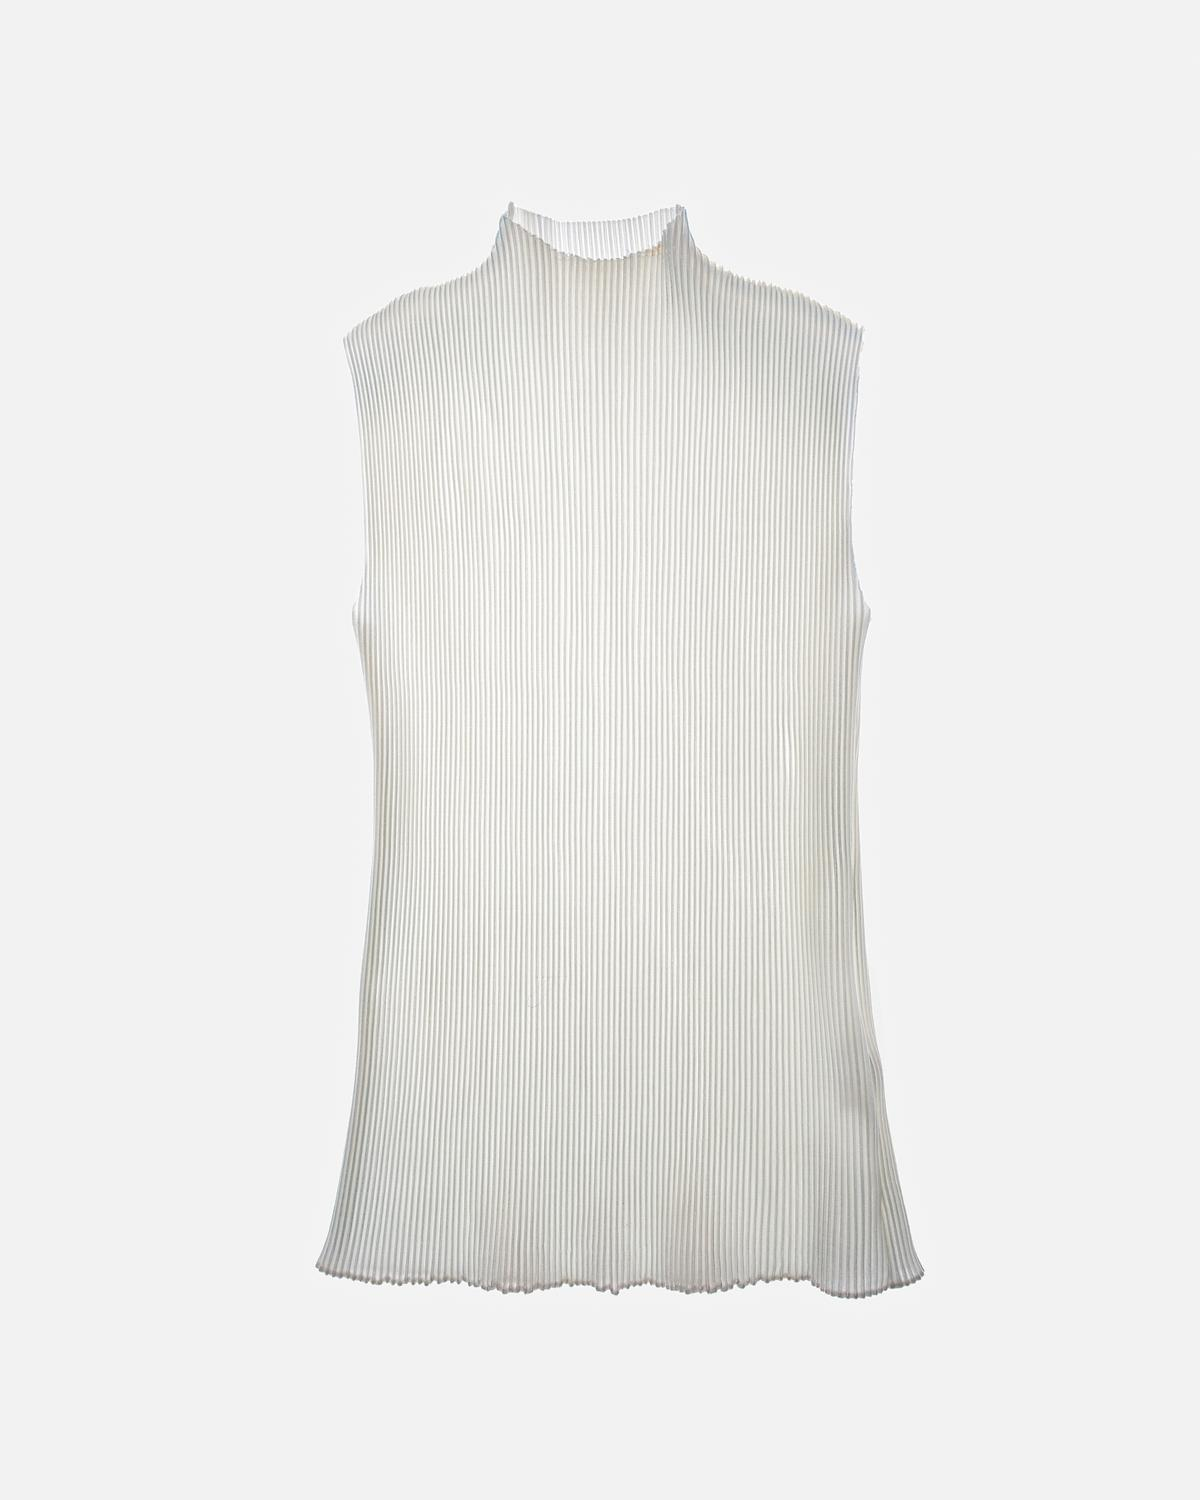 Pleated Pearl Lurex Top